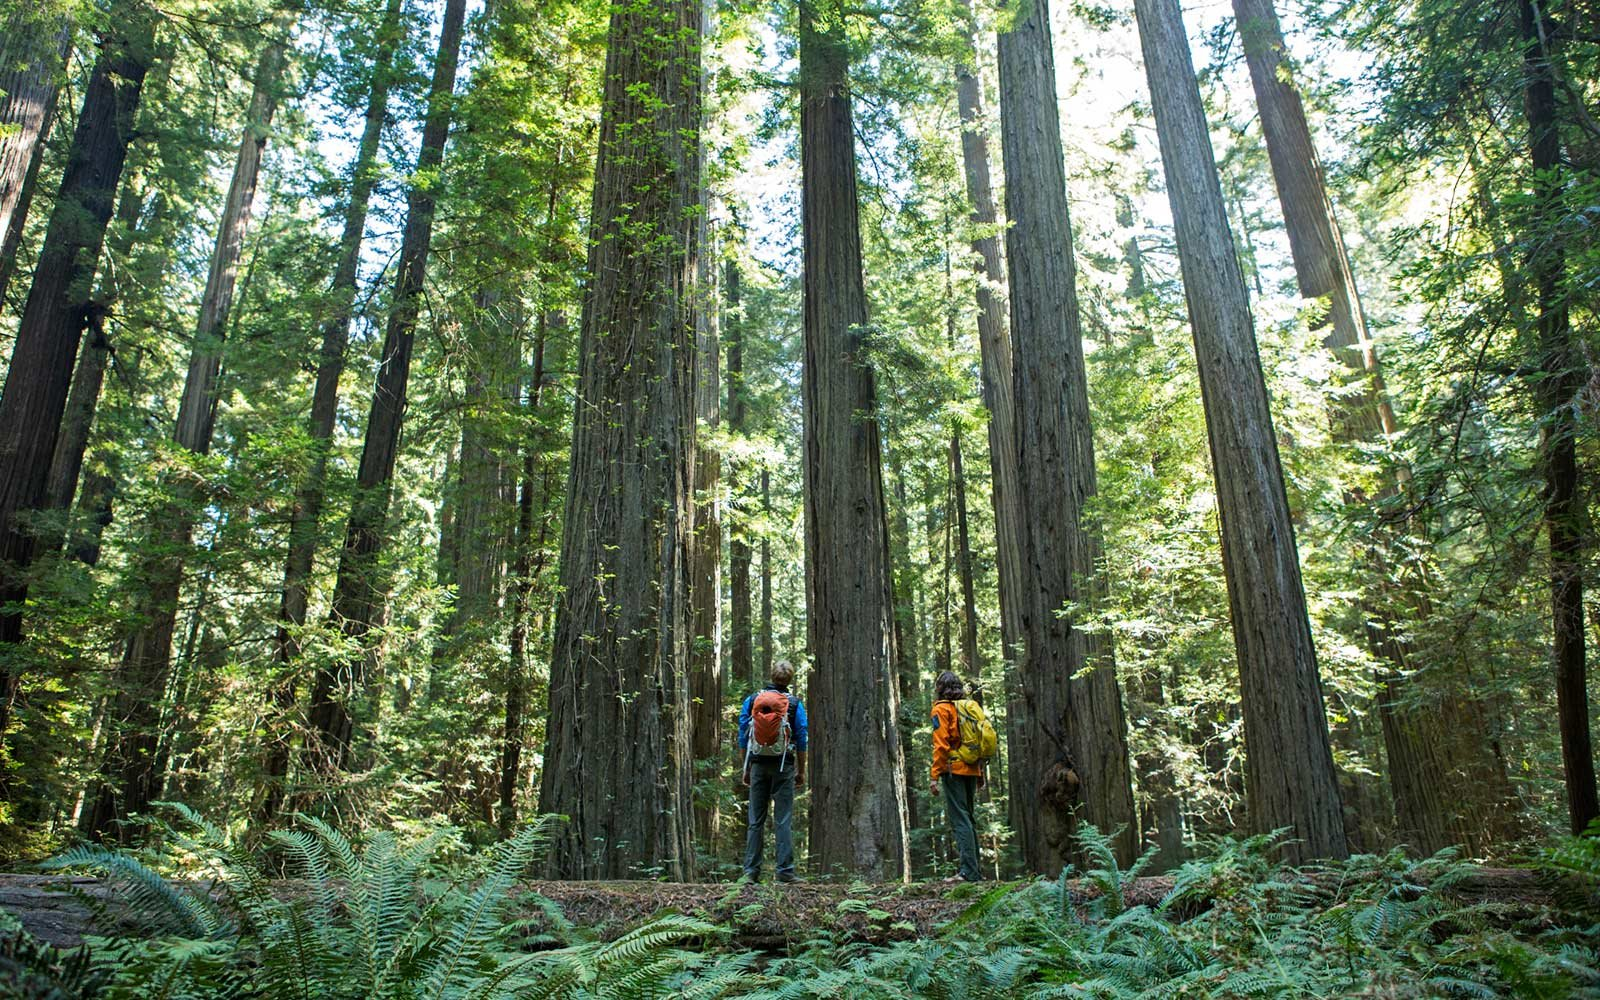 redwood-national-forest-california-almost-lost-REDWOOD1202.jpg